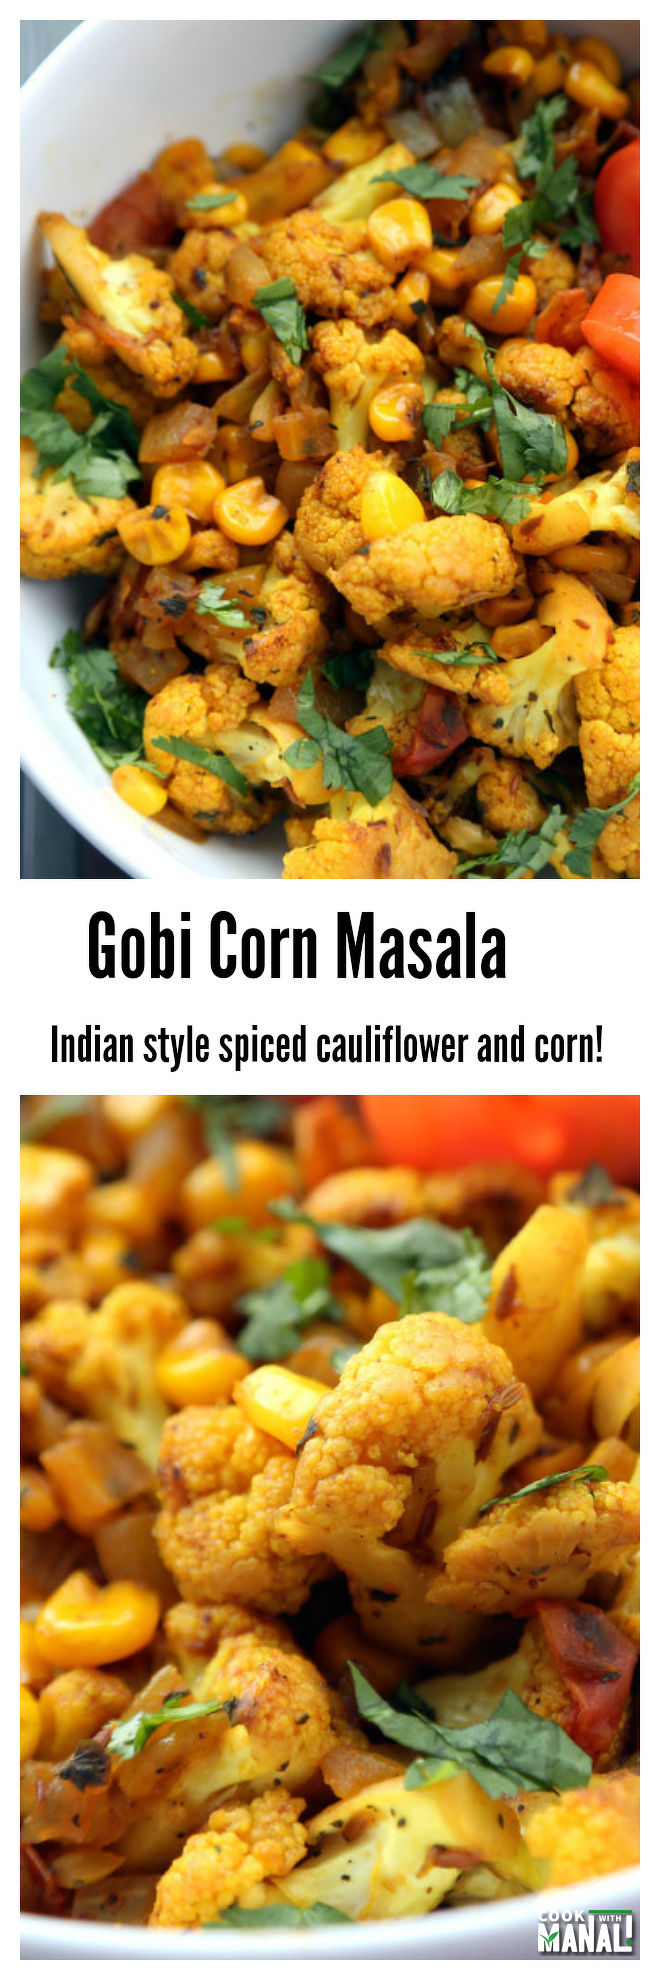 Gobi Corn Masala Collage